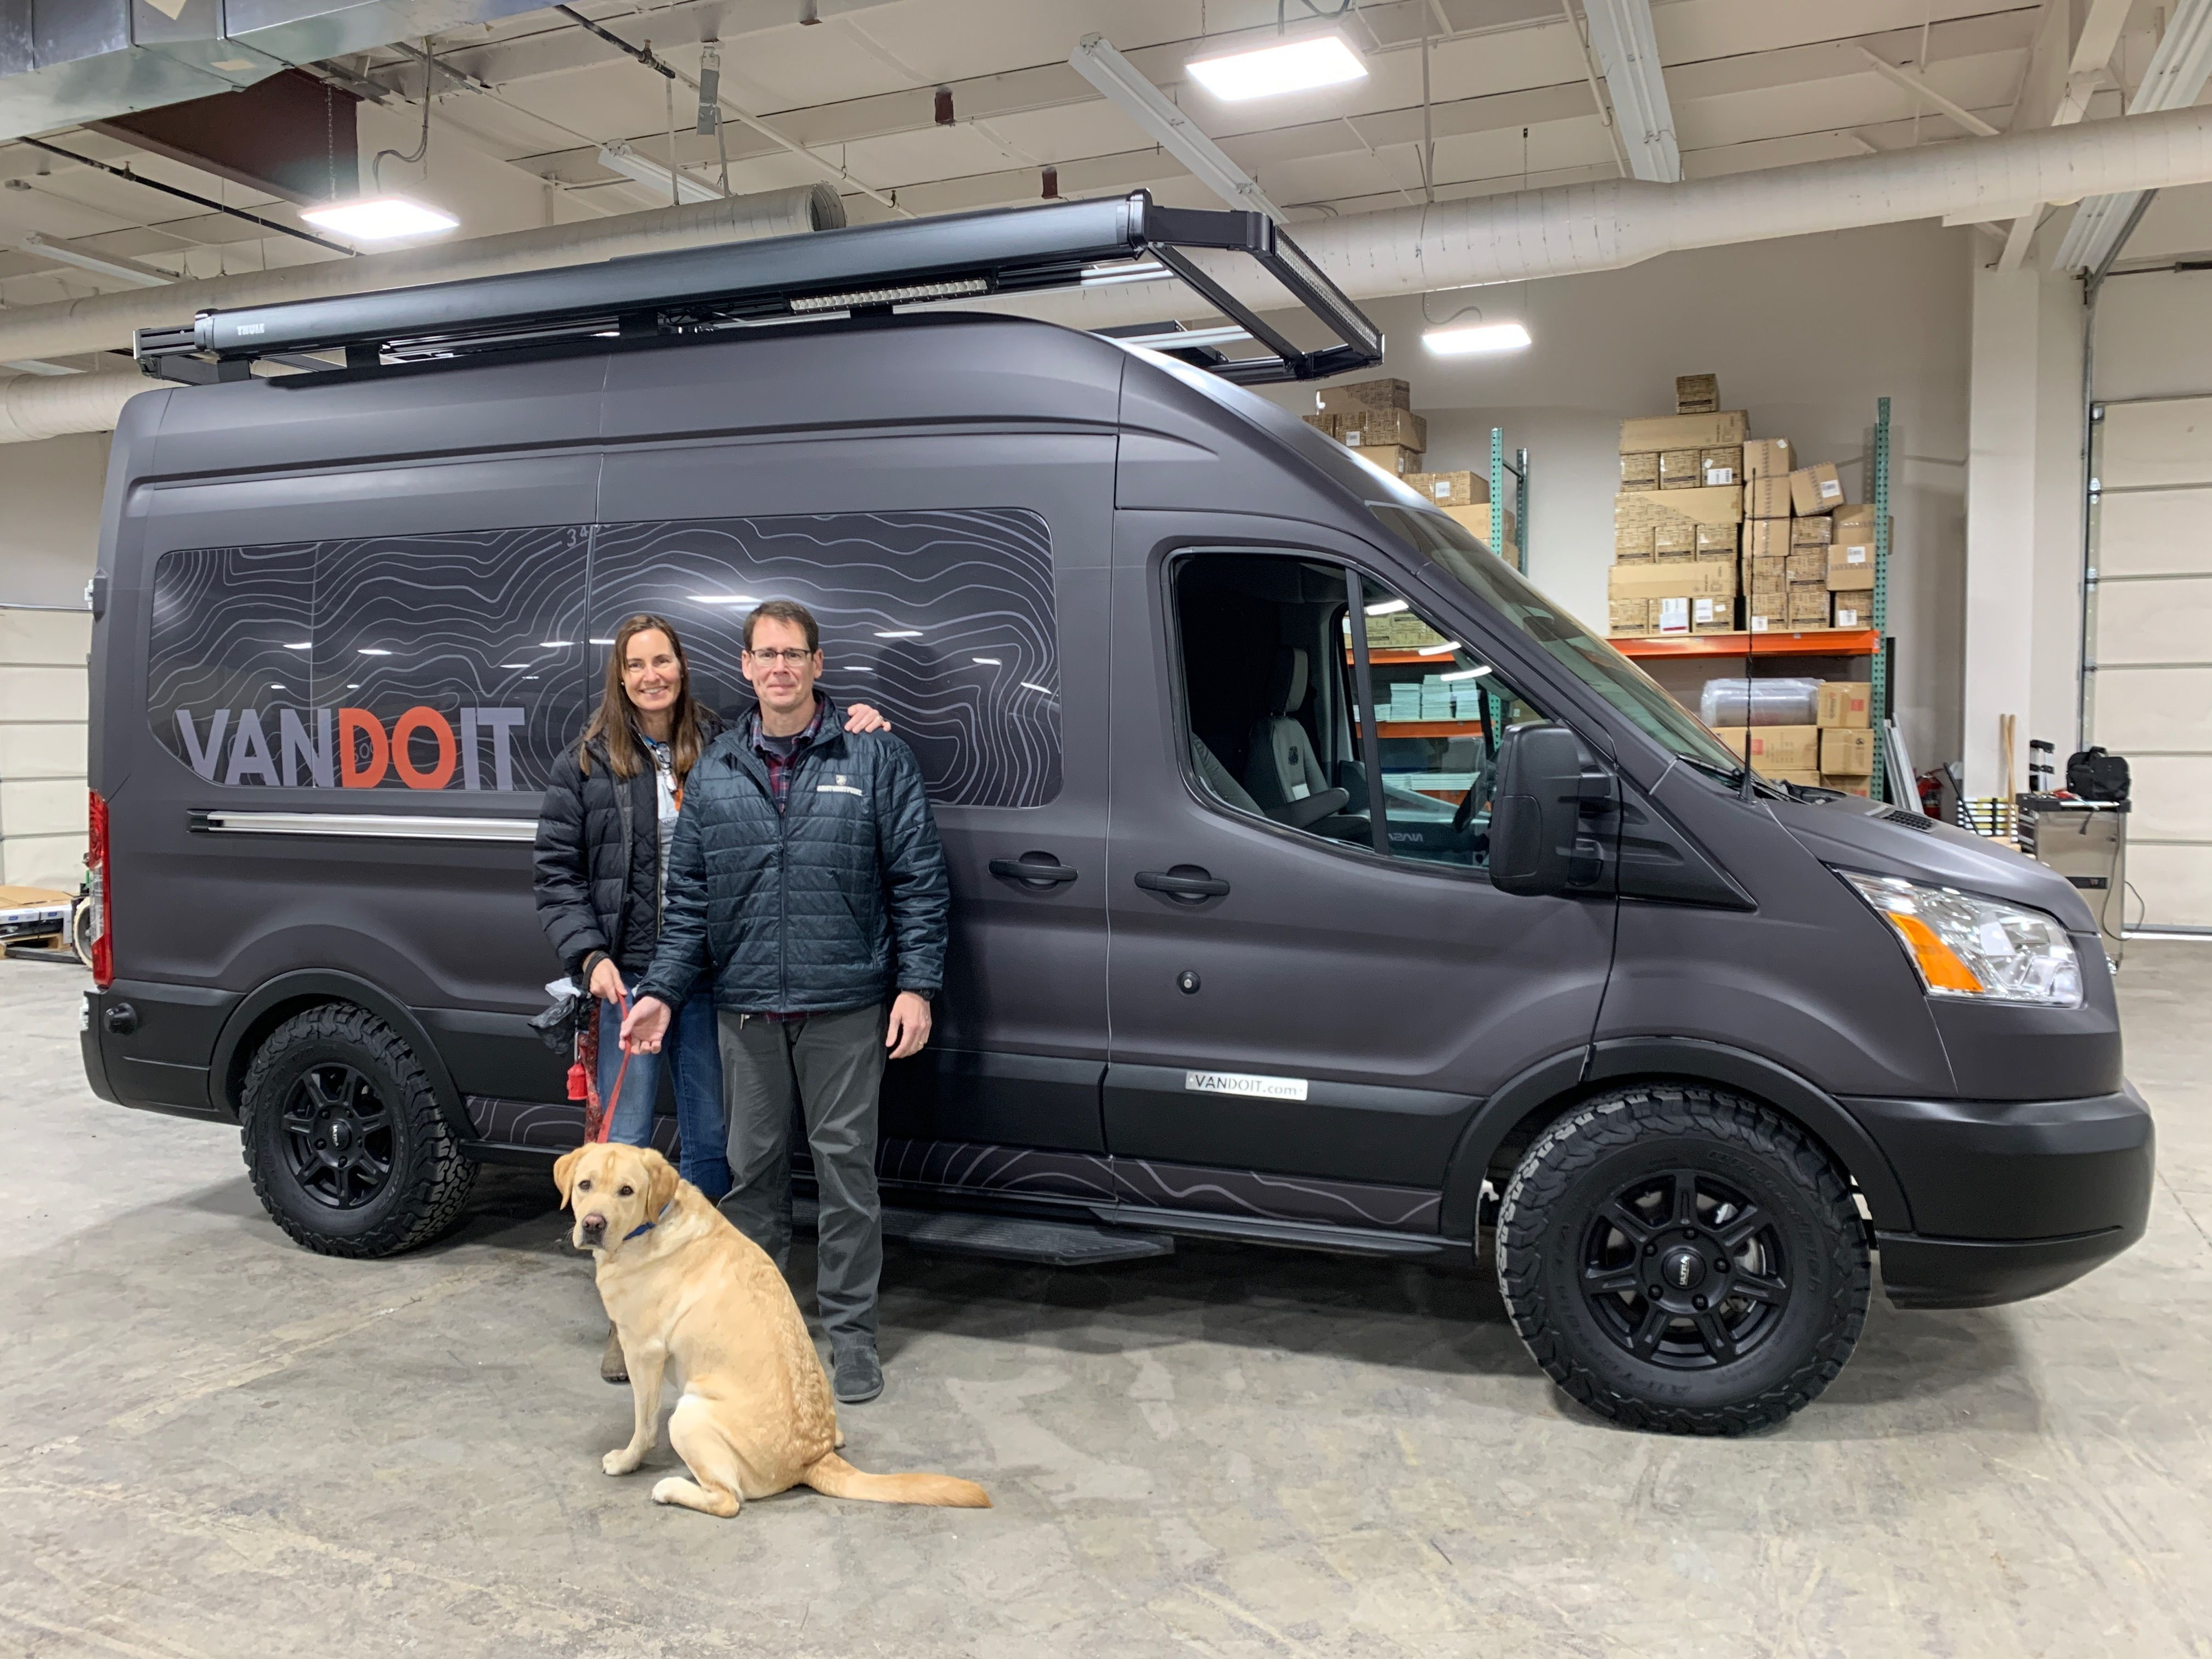 Congratulations To This Couple Their Pup On Their New Vandoit